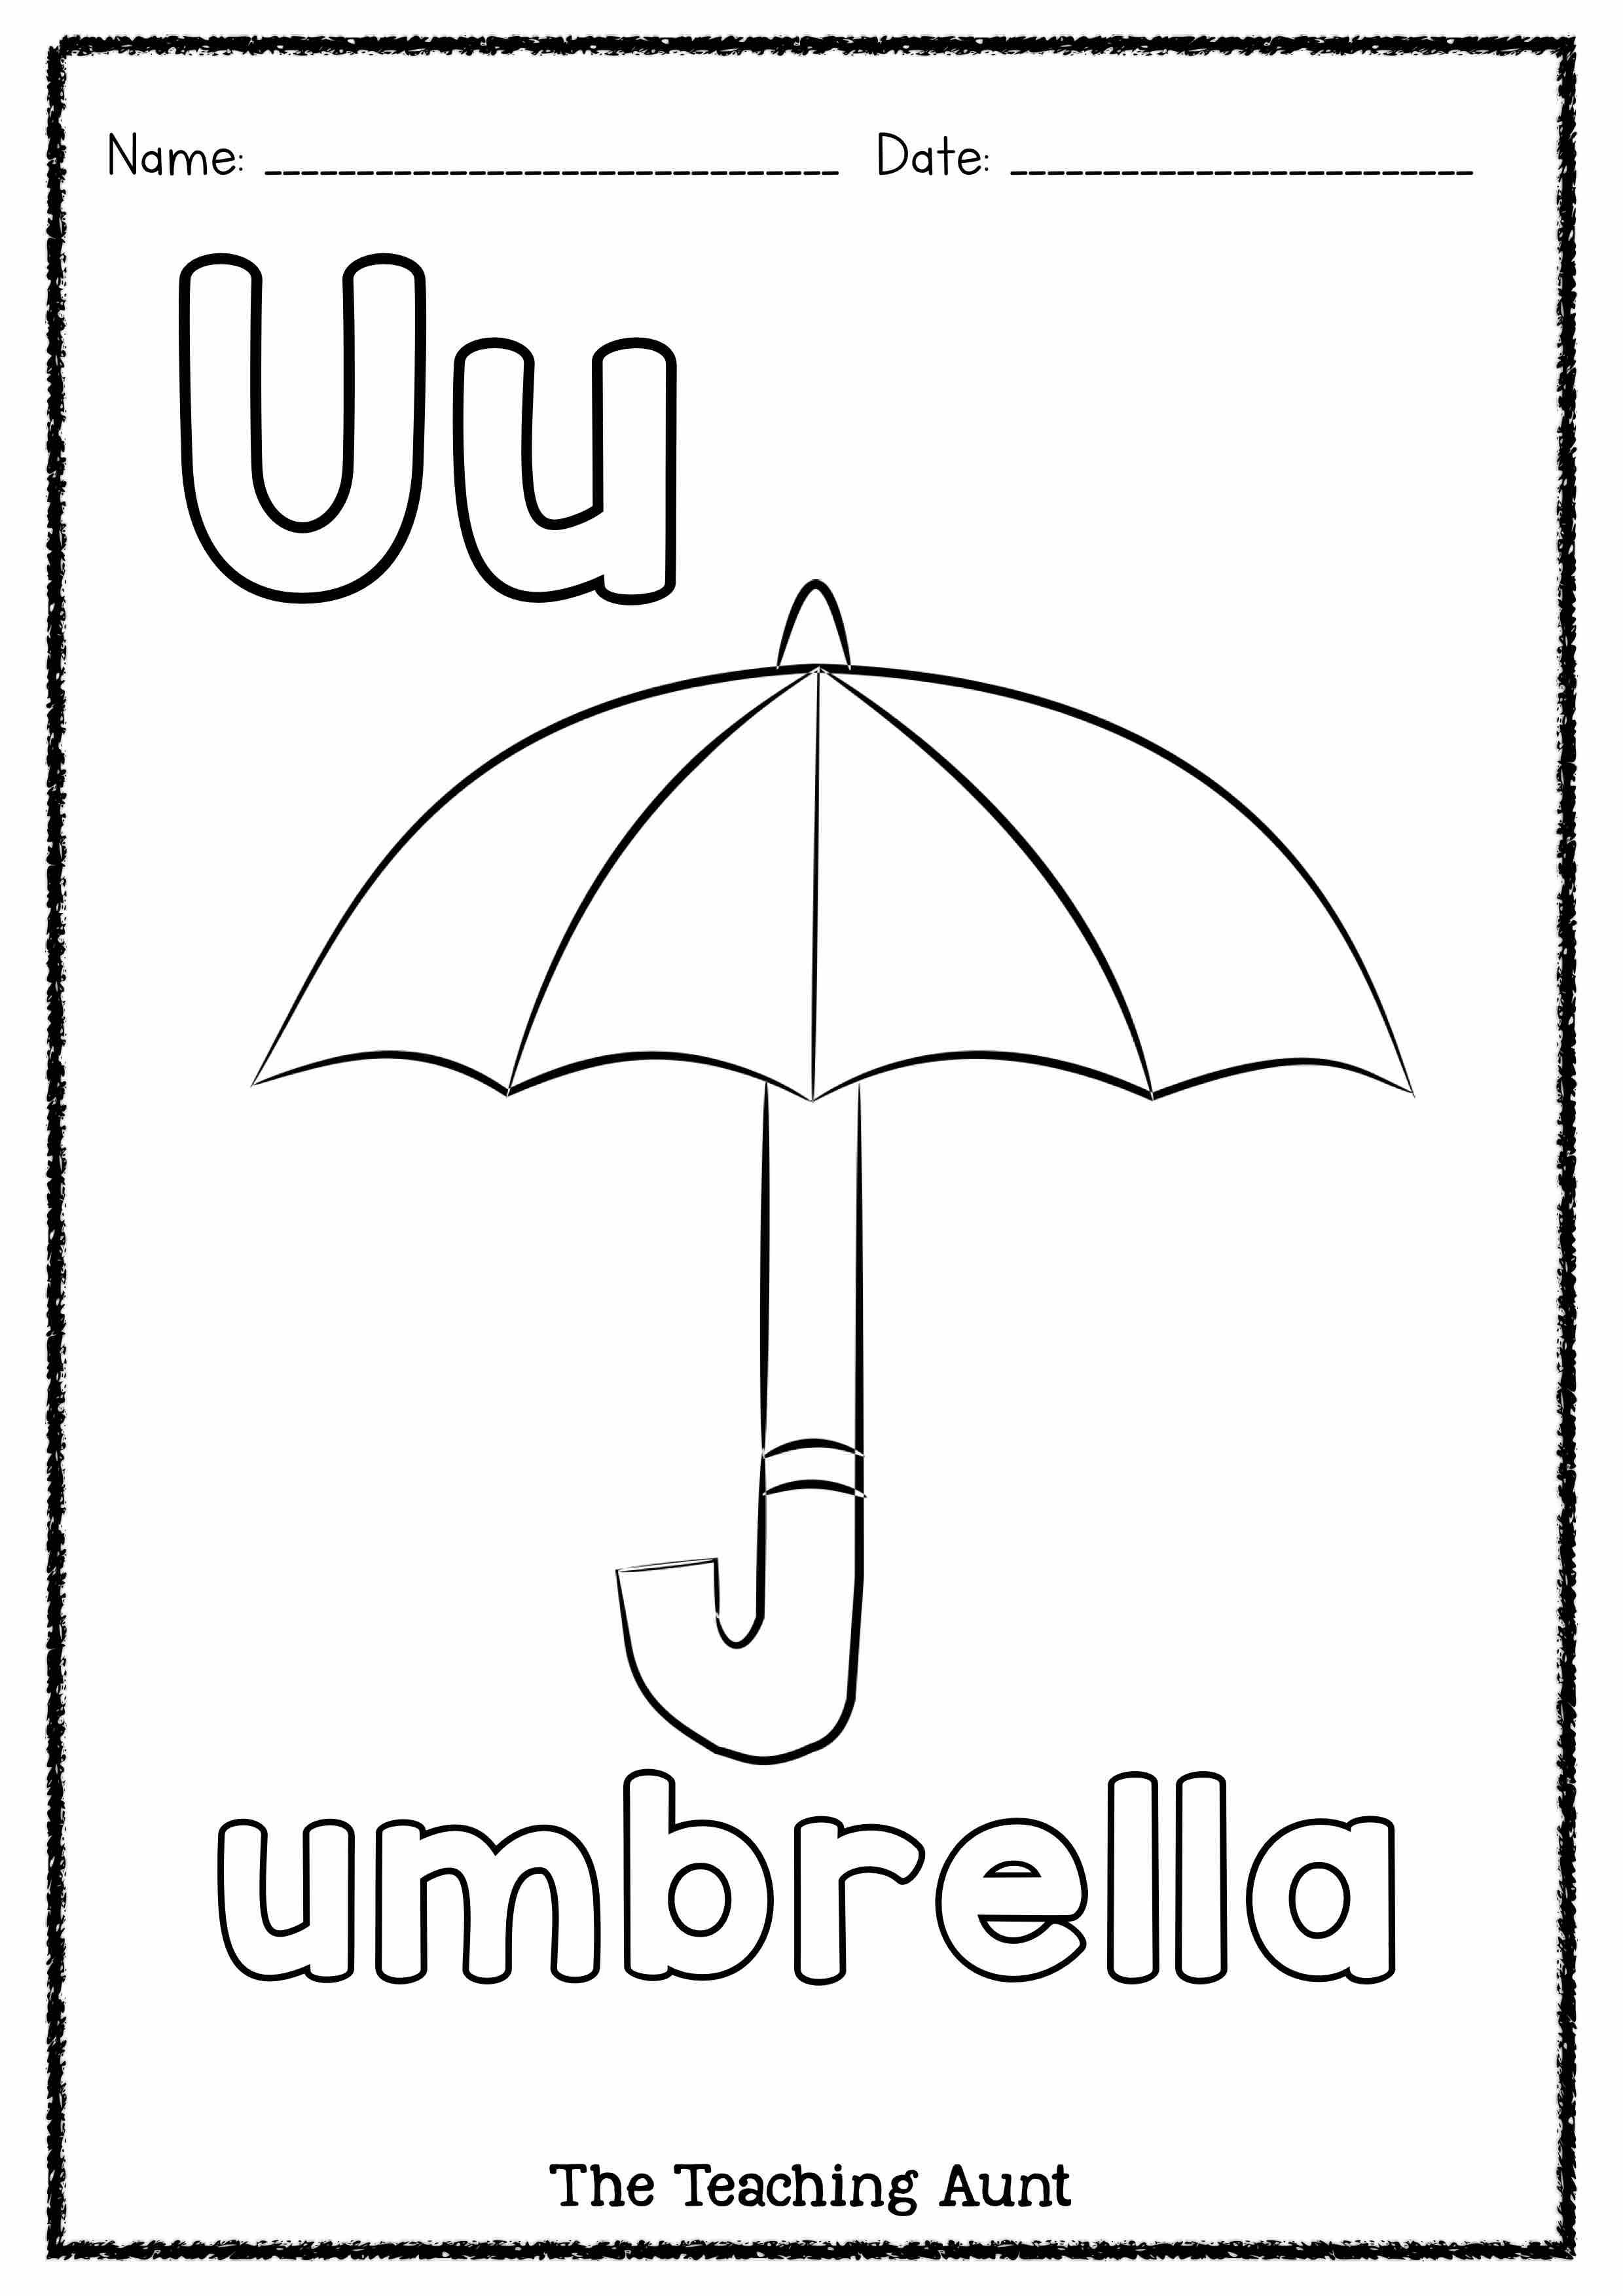 U Is For Umbrella Art And Craft The Teaching Aunt Umbrella Art U Is For Umbrella Umbrella Letter u worksheets for toddlers